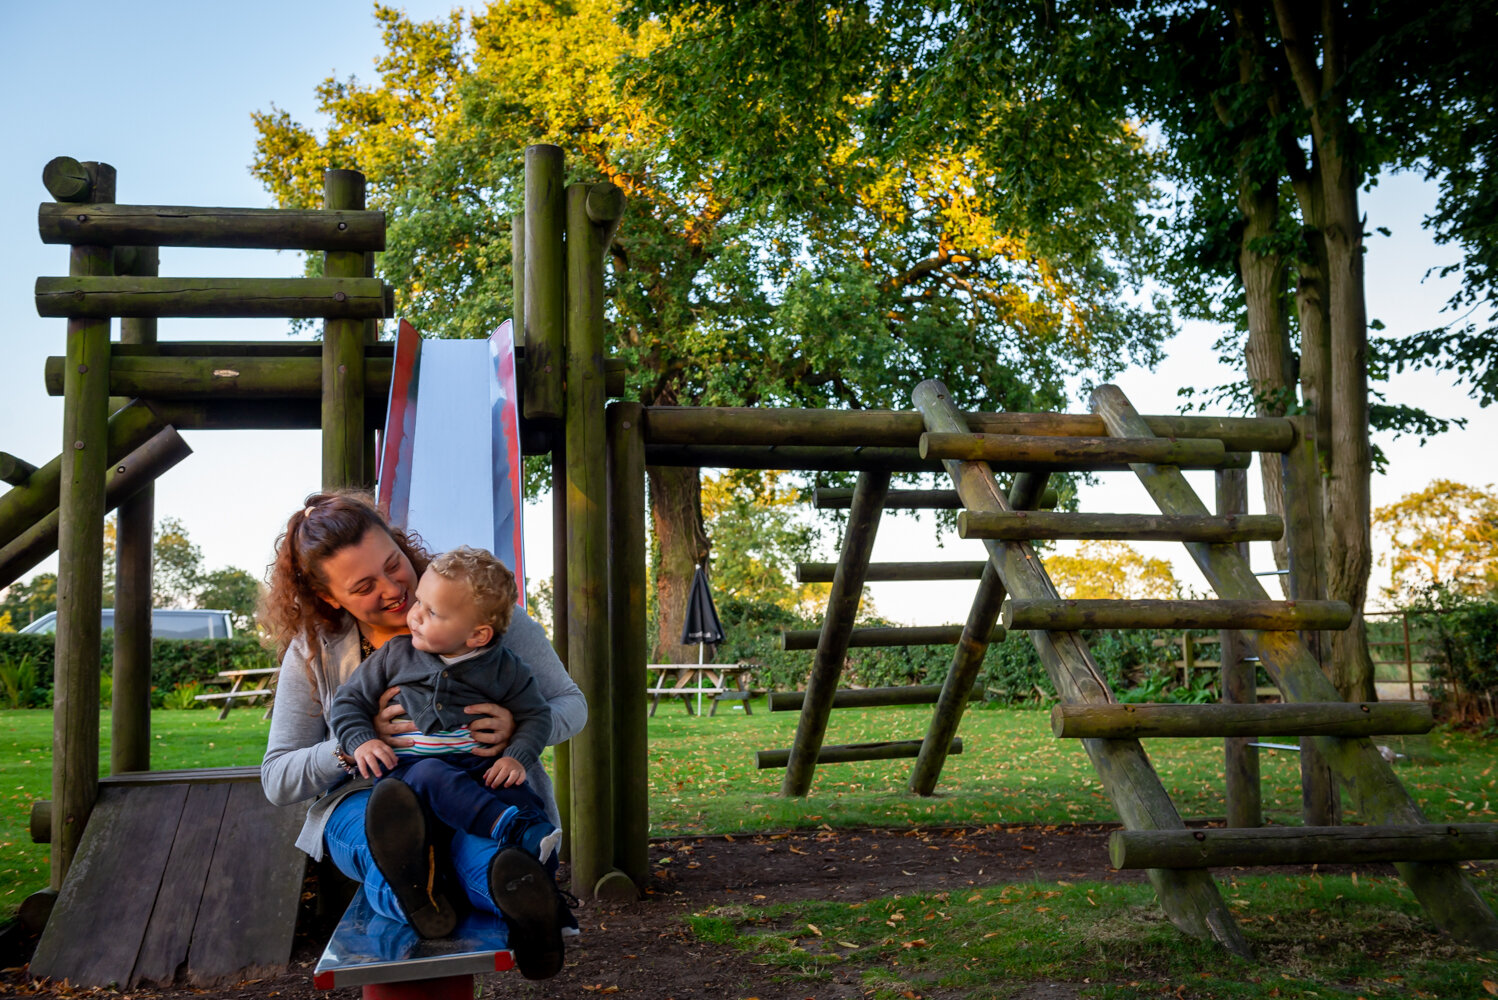 Adventure playground, ideal for keeping the kids occupied